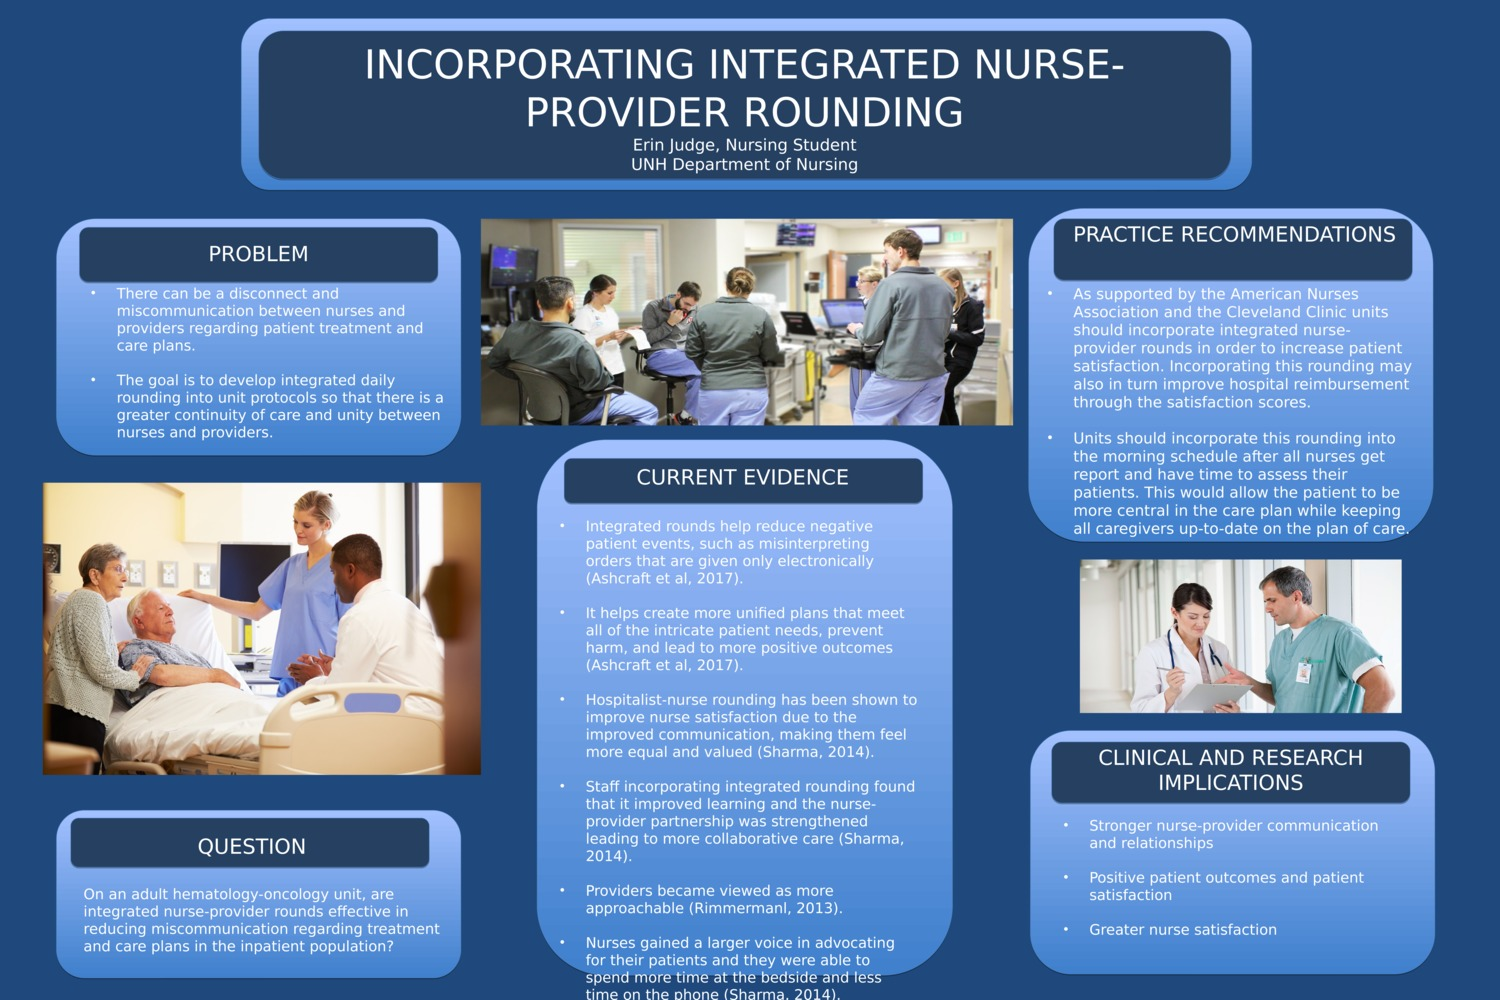 Incorporating Integrated Nurse-Provider Ronding by emj2002